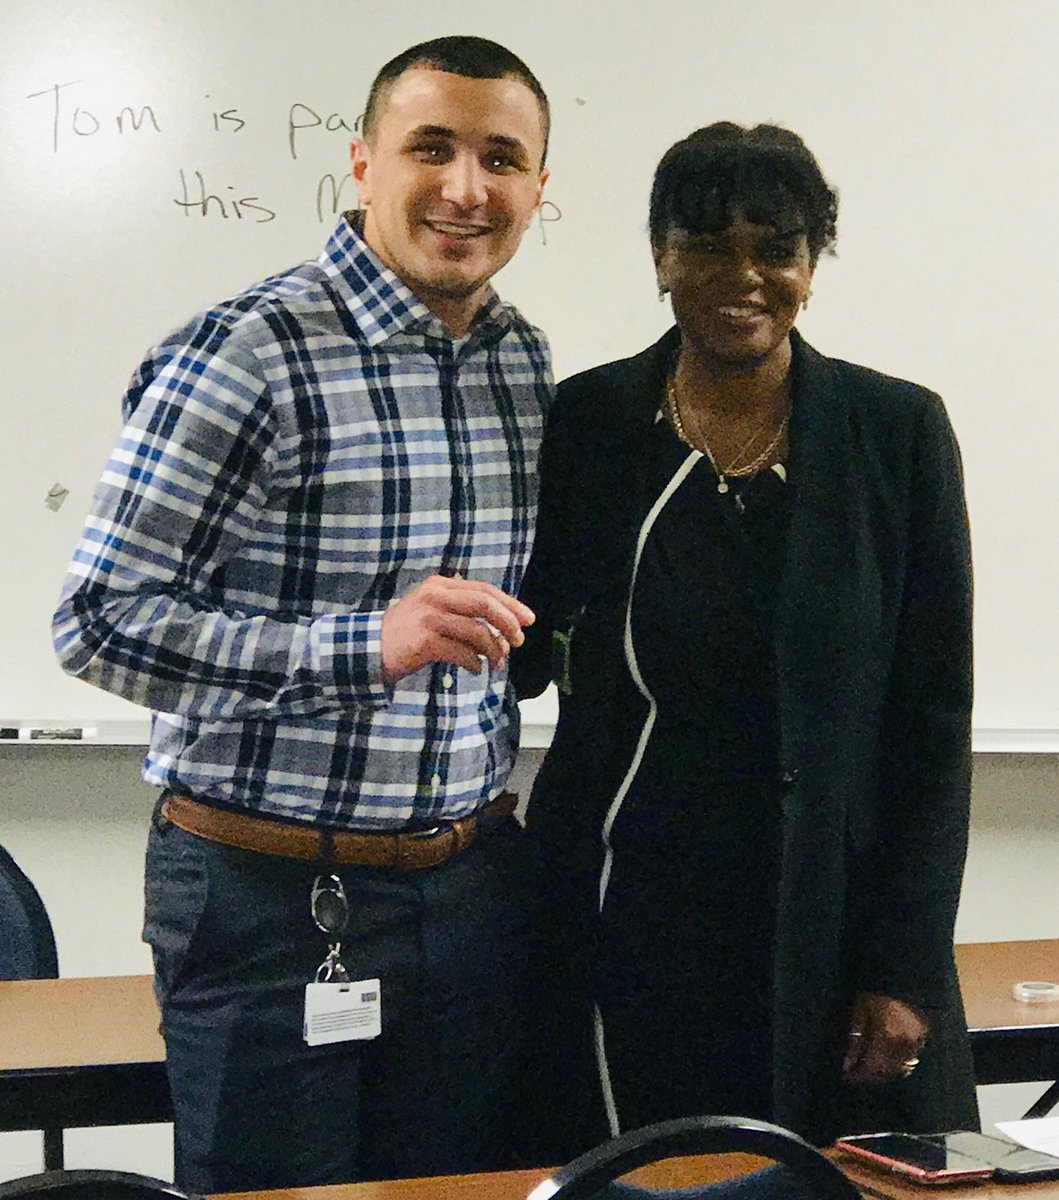 Oakland County Probation Agent Bazzi recognized by ADD Smith for his hard work and dedication as a Treatment Court Agent. Keep up the great work! @Dietrichb7 @MDOCWayneh @LatrecePorter https://t.co/rwVuDNAuCd